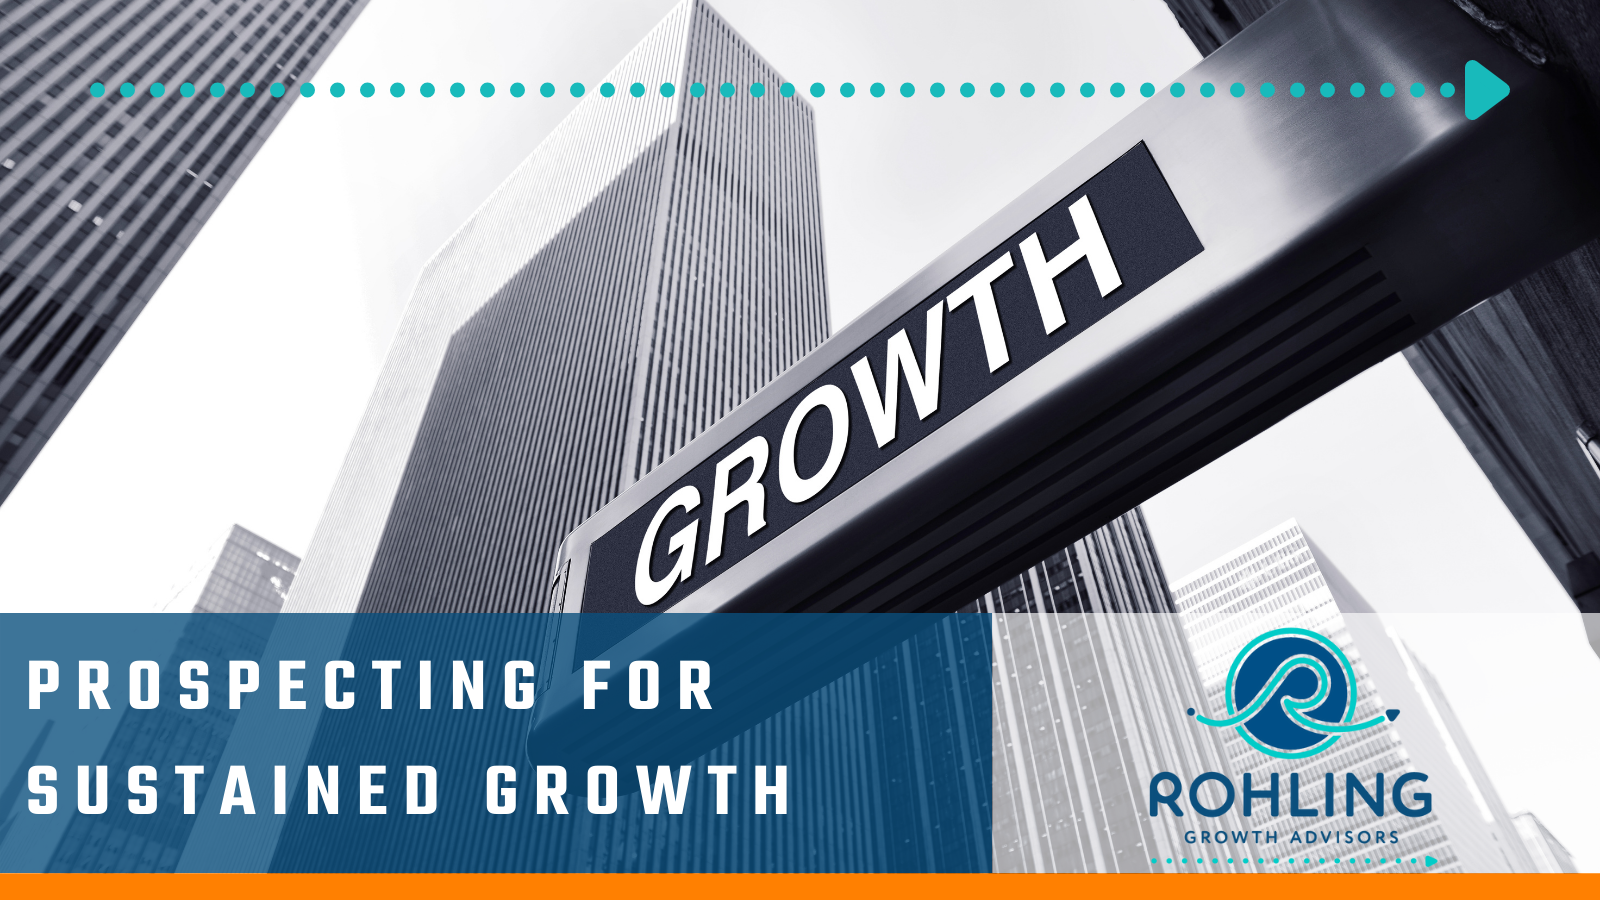 Rohling Growth Advisors, Prospecting for Sustained Growth